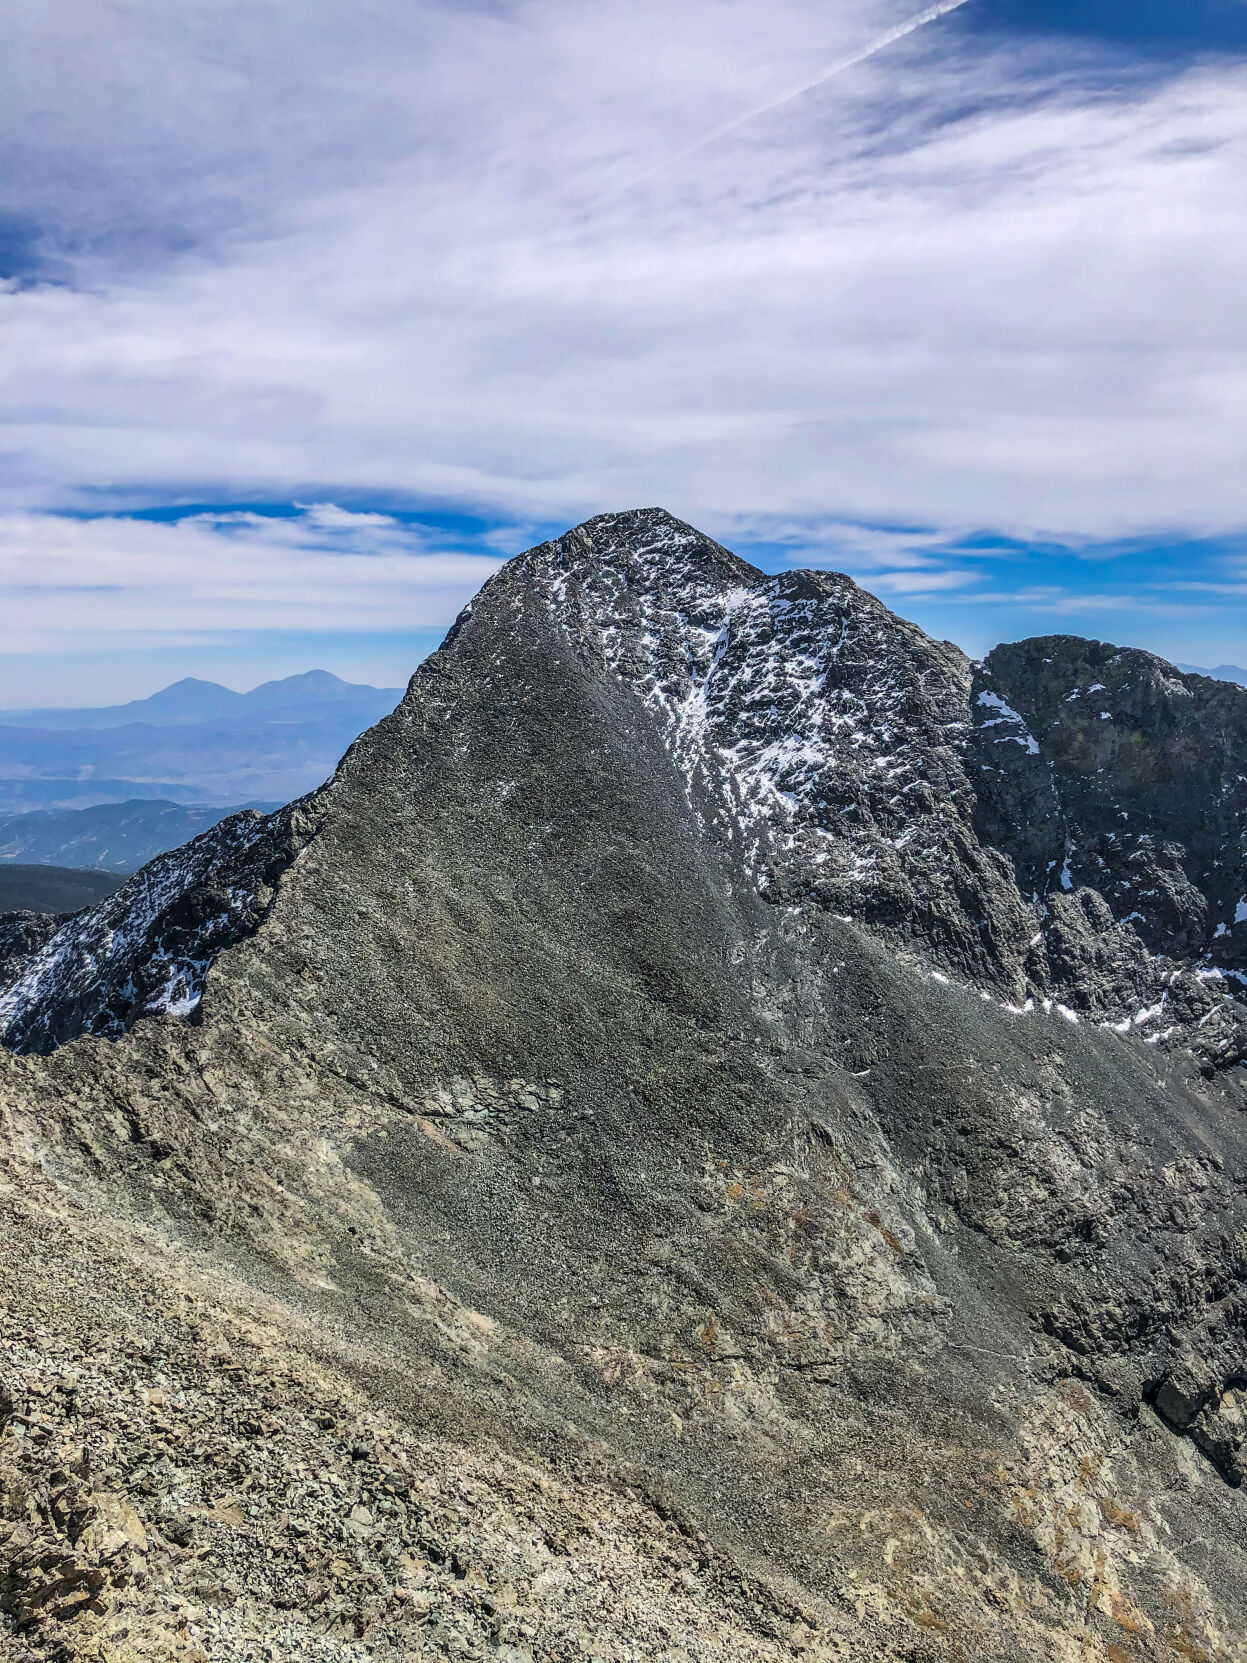 This photo shows Blanca Peak from Ellingwood Point. The route typically used to summit Blanca Peak is along the left-most ridge leading to the summit. Photo Credit: Spencer McKee.